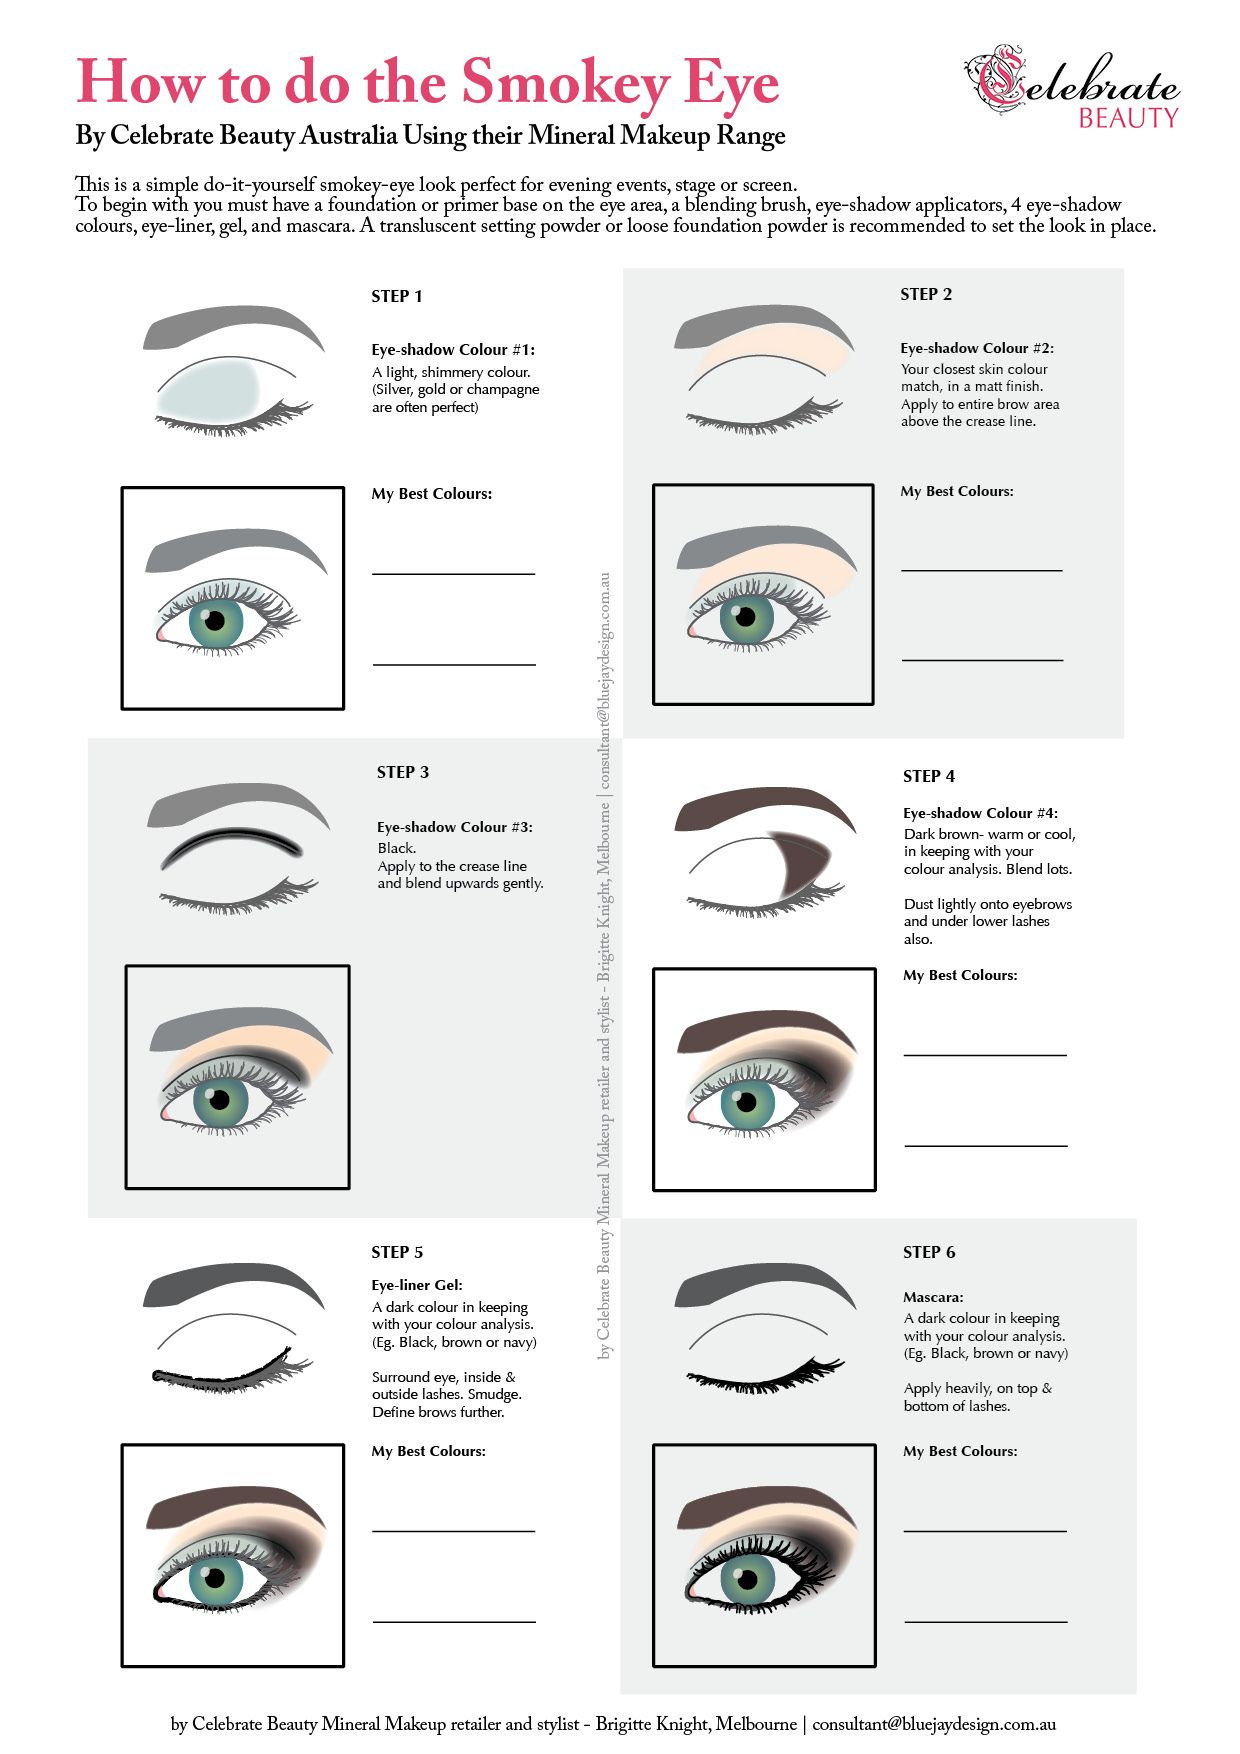 How to do the smokey eye diagram for makeup application visit my how to do the smokey eye diagram for makeup application visit my board for the upcoming course in melbourne smokeyeye makeuptutorial makeupdemo ccuart